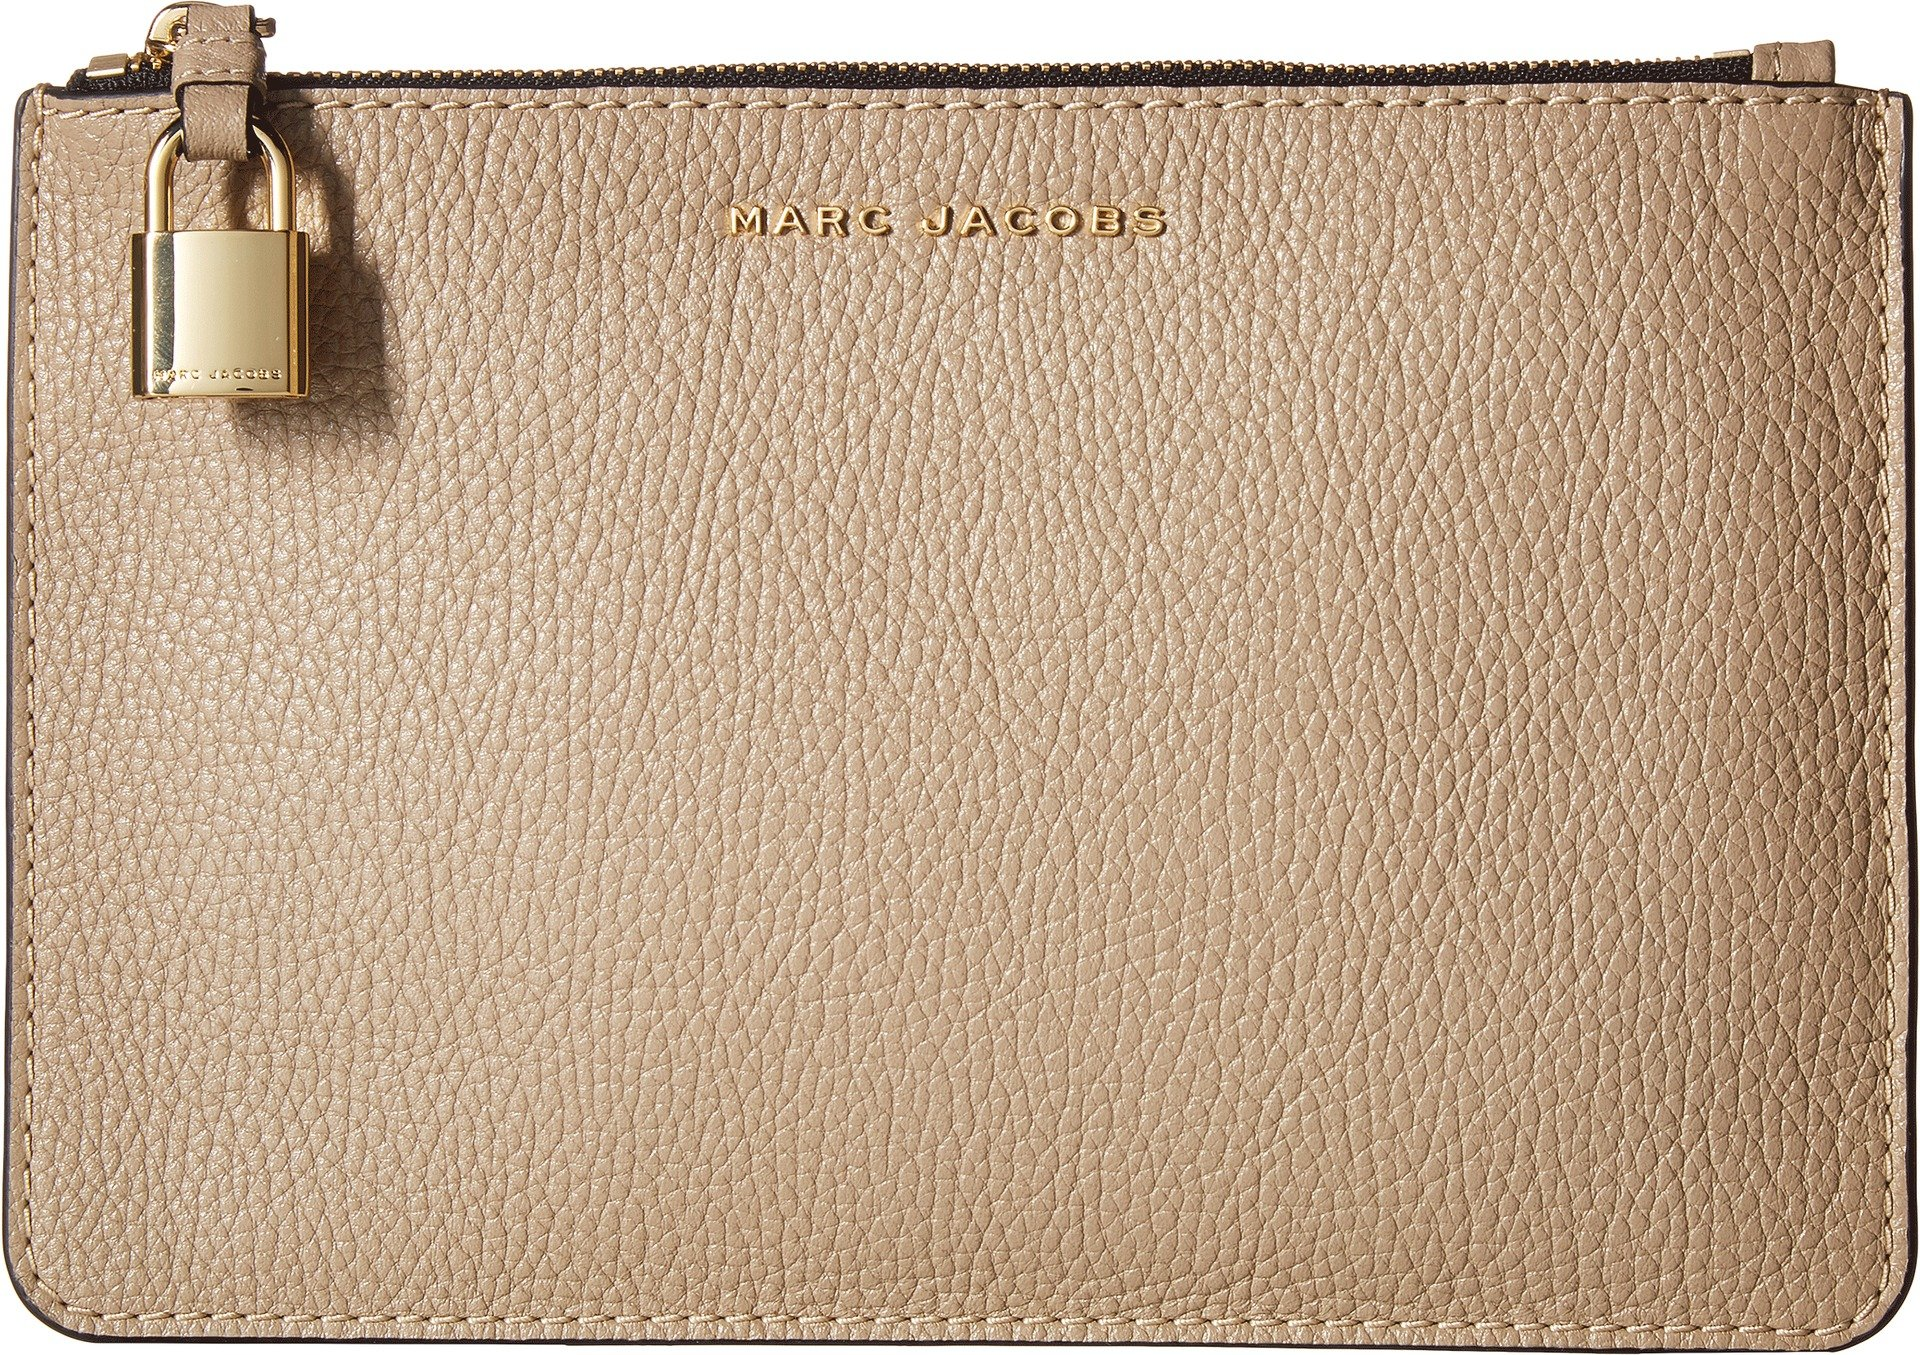 Marc Jacobs Women's The Grind Medium Pouch Light Slate One Size by Marc Jacobs (Image #1)